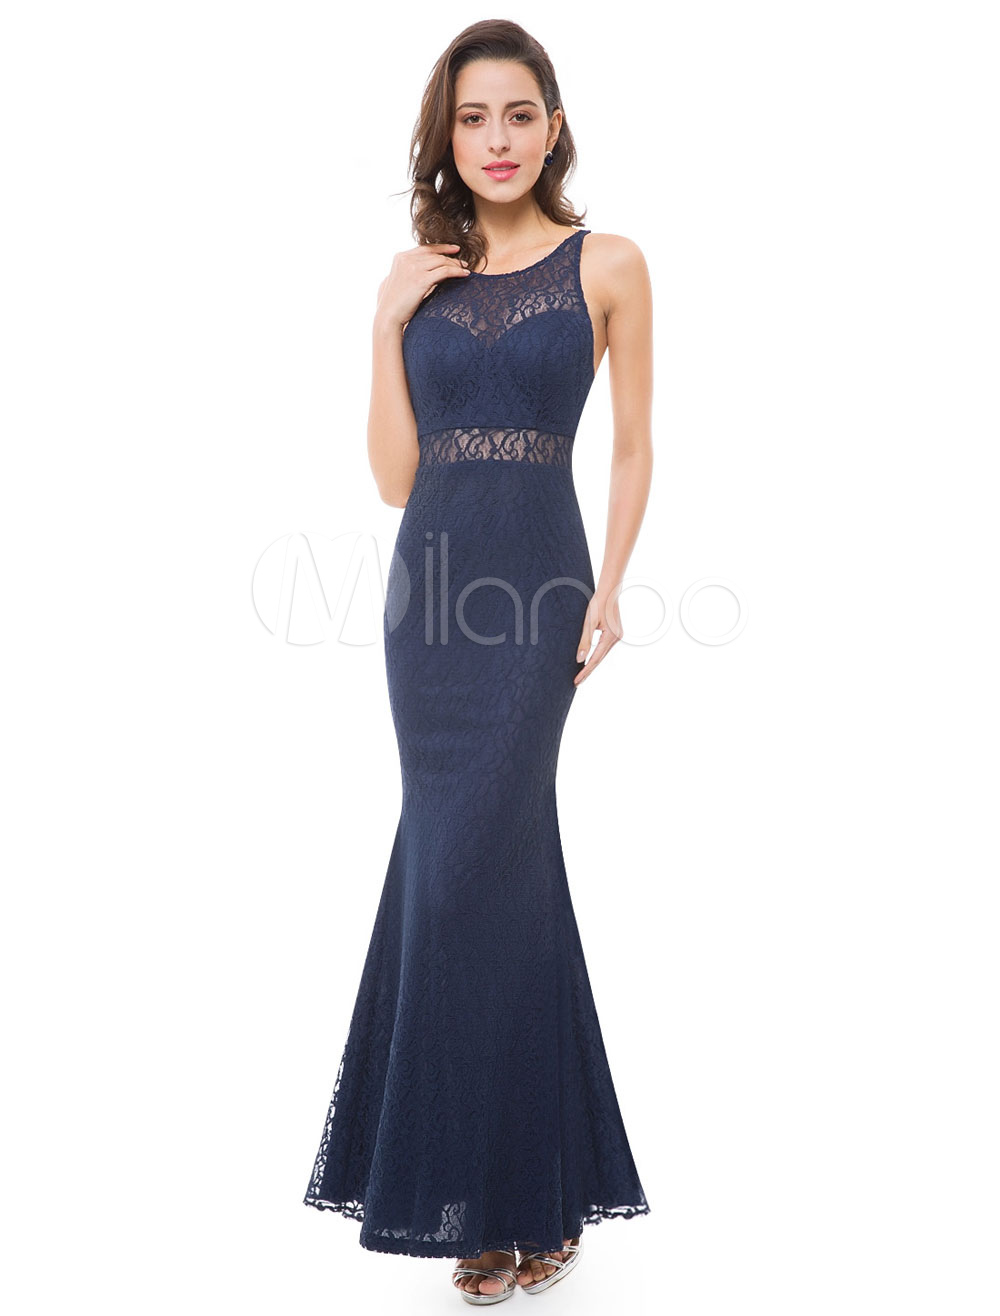 Buy Mermaid Evening Dresses Backless Lace Illusion Sweetheart Floor Length Dark Navy Formal Dresses for $105.59 in Milanoo store